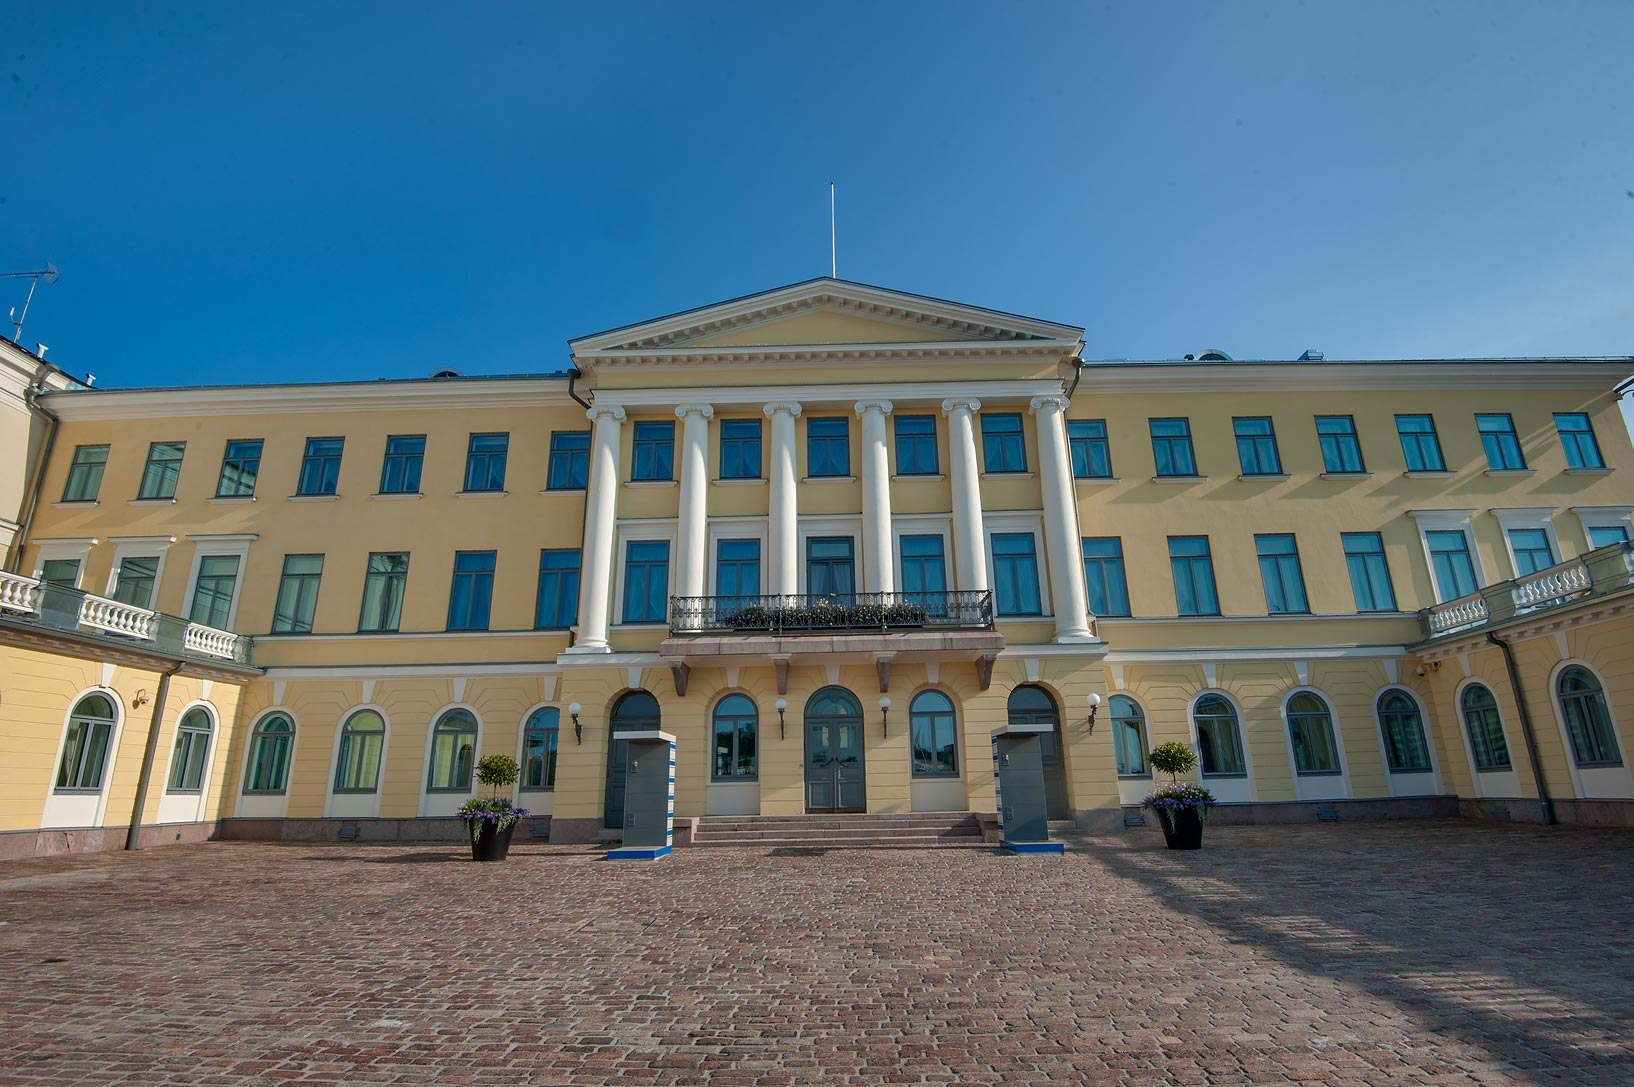 Presidential Palace (1845), a former residence of a Russian Tsar. Helsinki, Finland